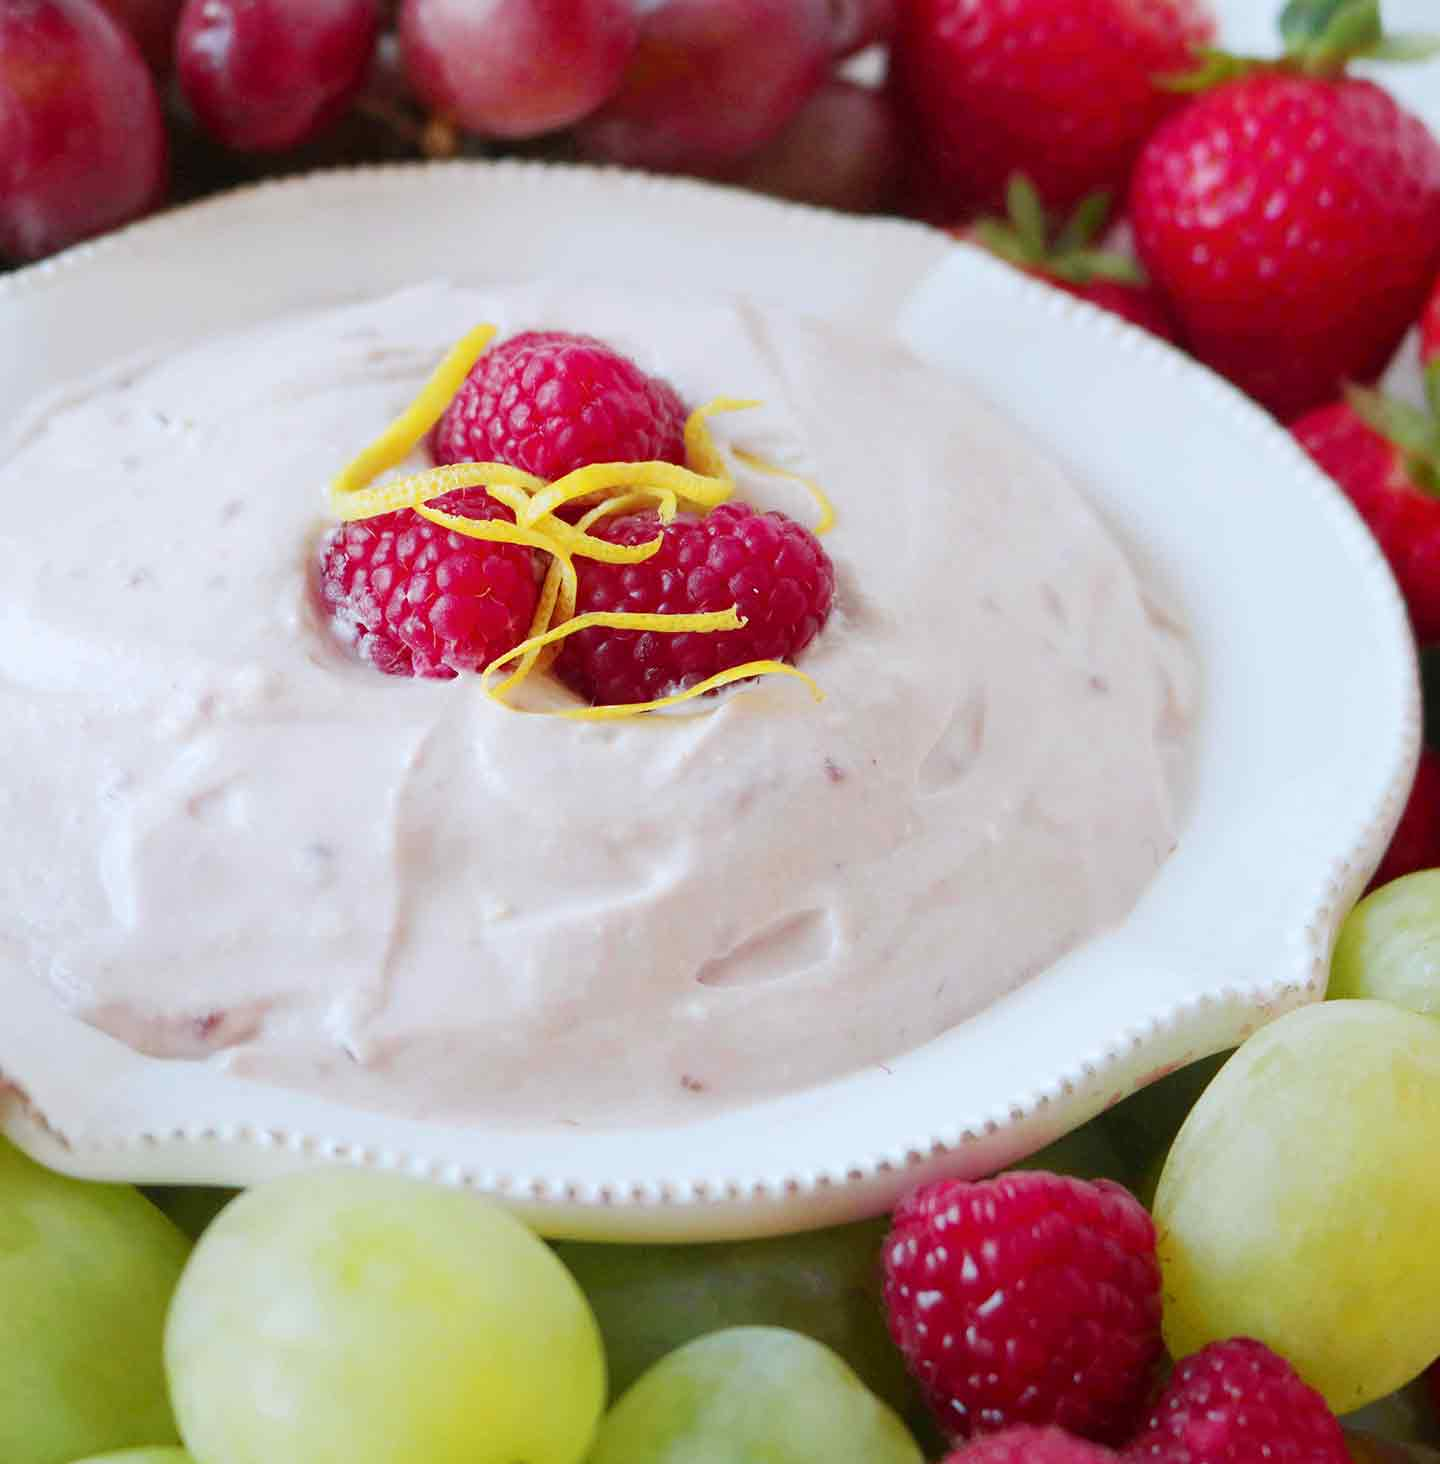 A bowl of Raspberry Yogurt Fruit Dip is served with green grapes, red grapes, fresh raspberries and strawberries